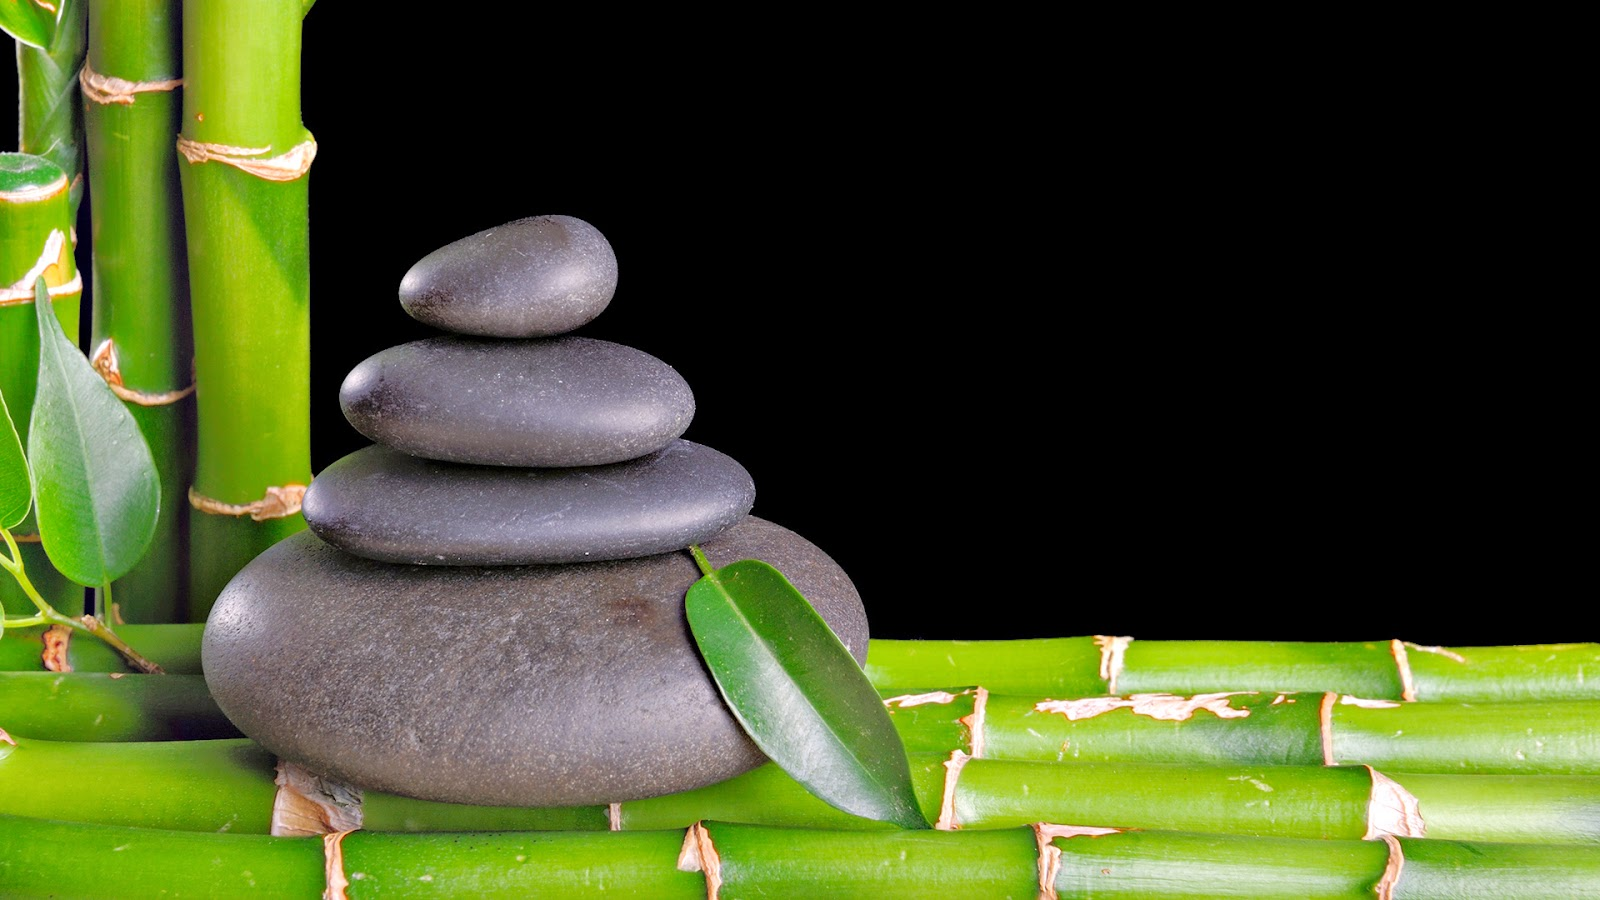 zen stones and bamboo - photo #39